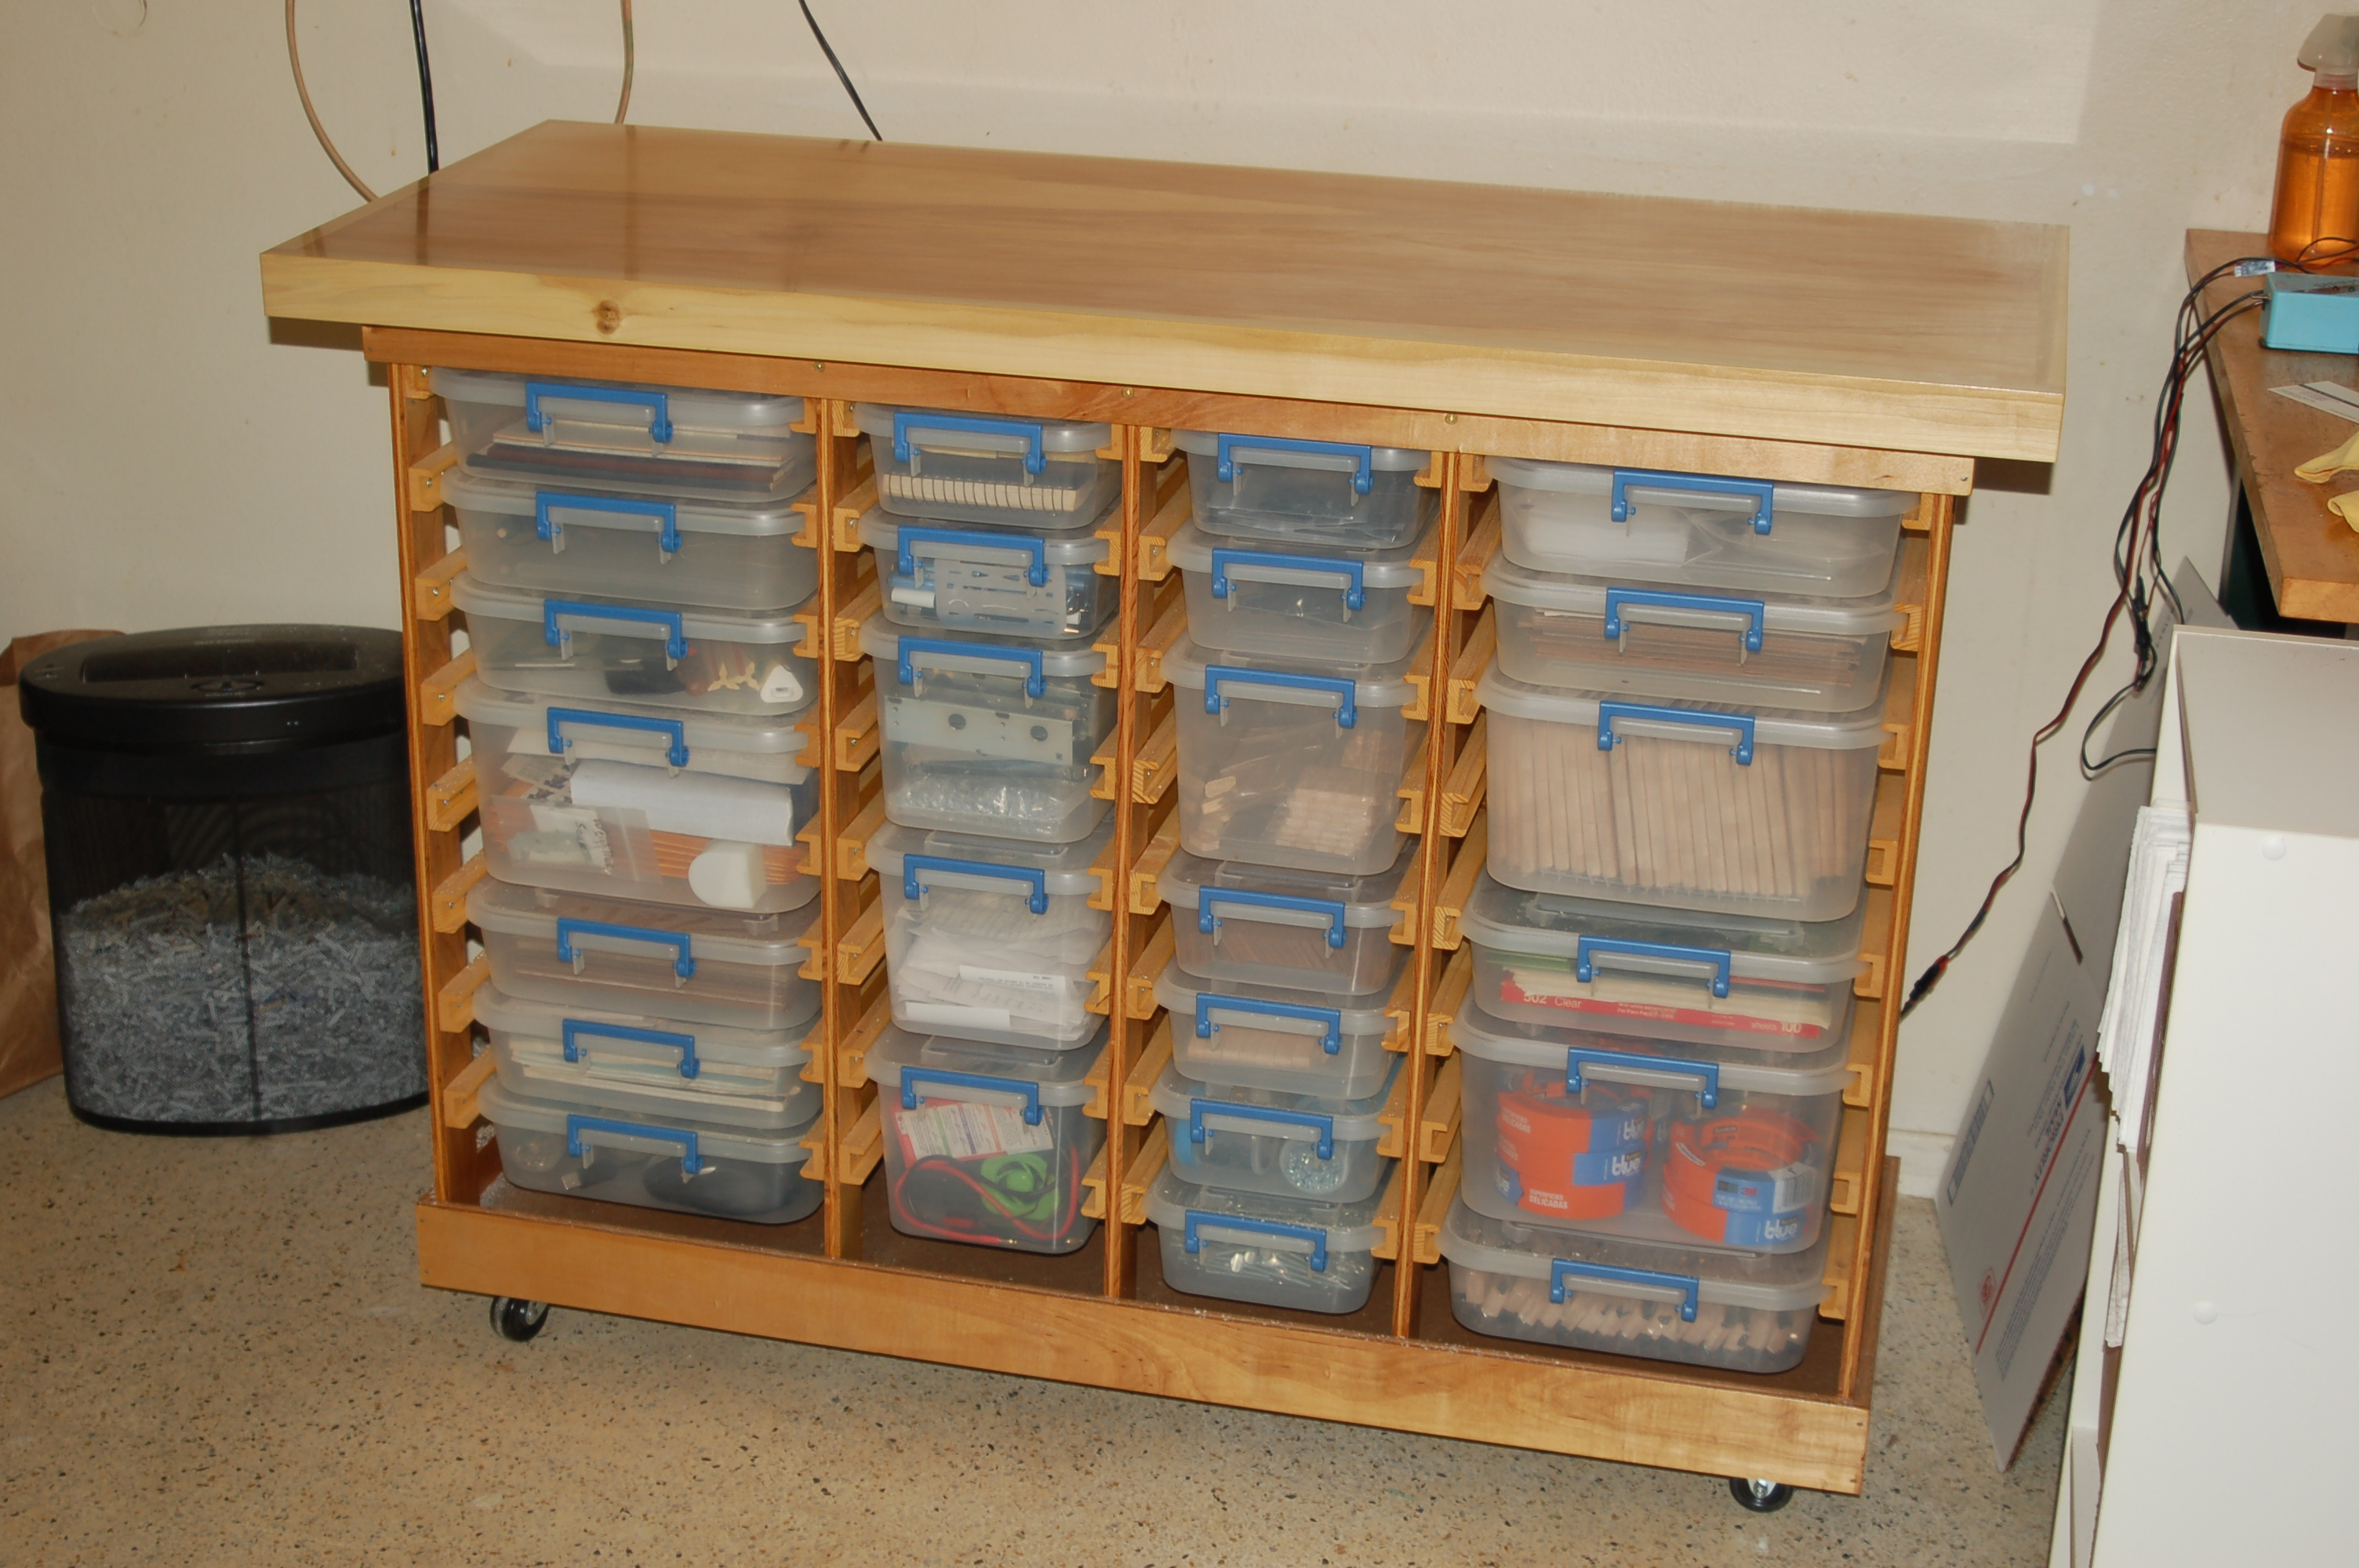 Click image for larger version  Name:Sterilite Storage Cabinet 003.jpg Views:62 Size:2.55 MB ID:1963918